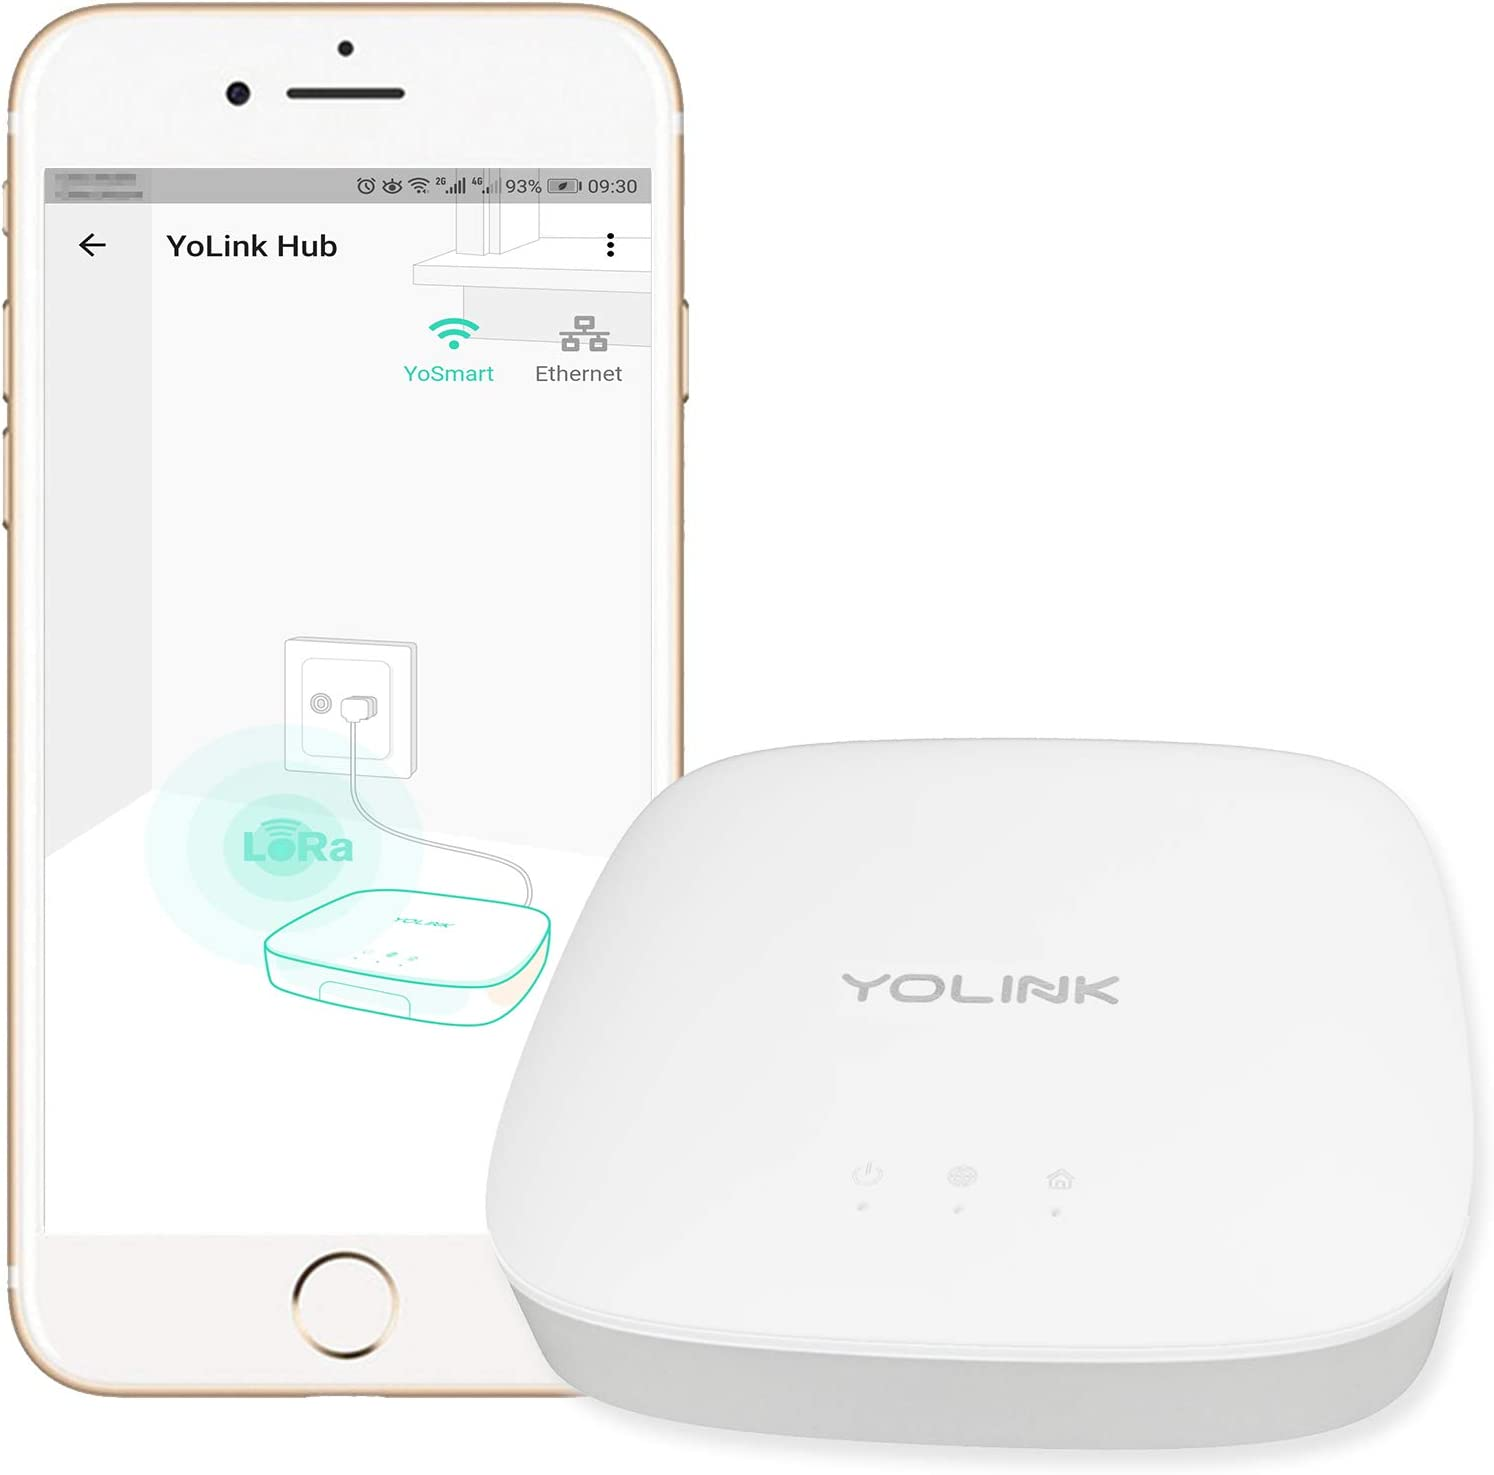 YoLink Hub - Central Controller Only for YoLink Devices, 1/4 Mile World's Longest Range Smart Hub LoRa Enabled Smart Home Automation Hub Smart Home Security Monitoring Gateway